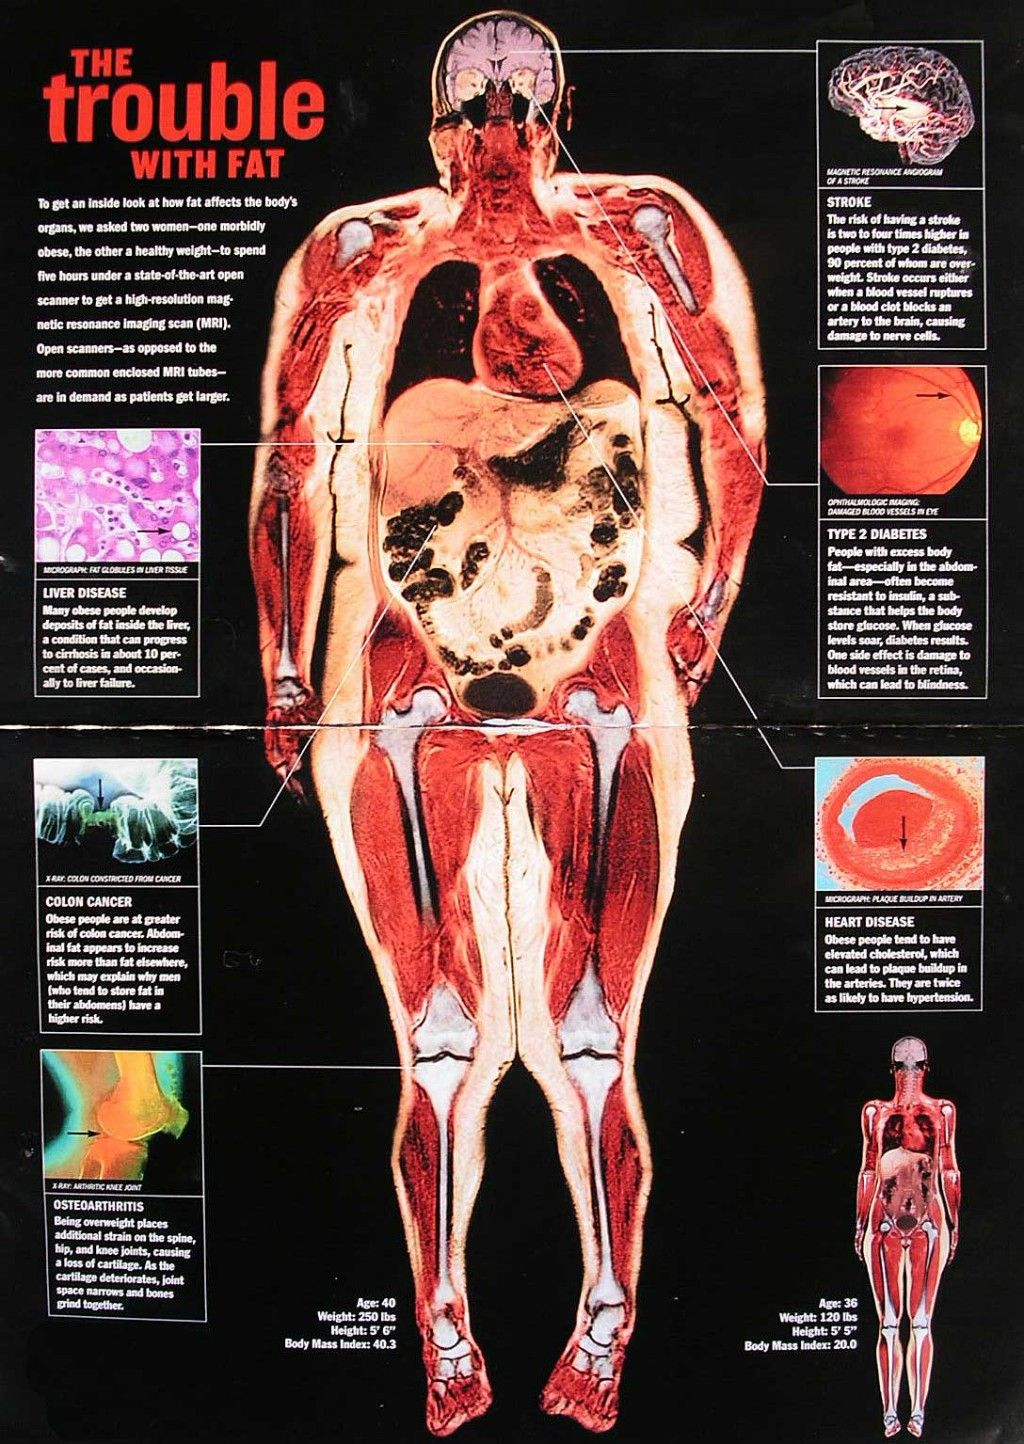 Full-body medical scan reveals health complications due to being ...